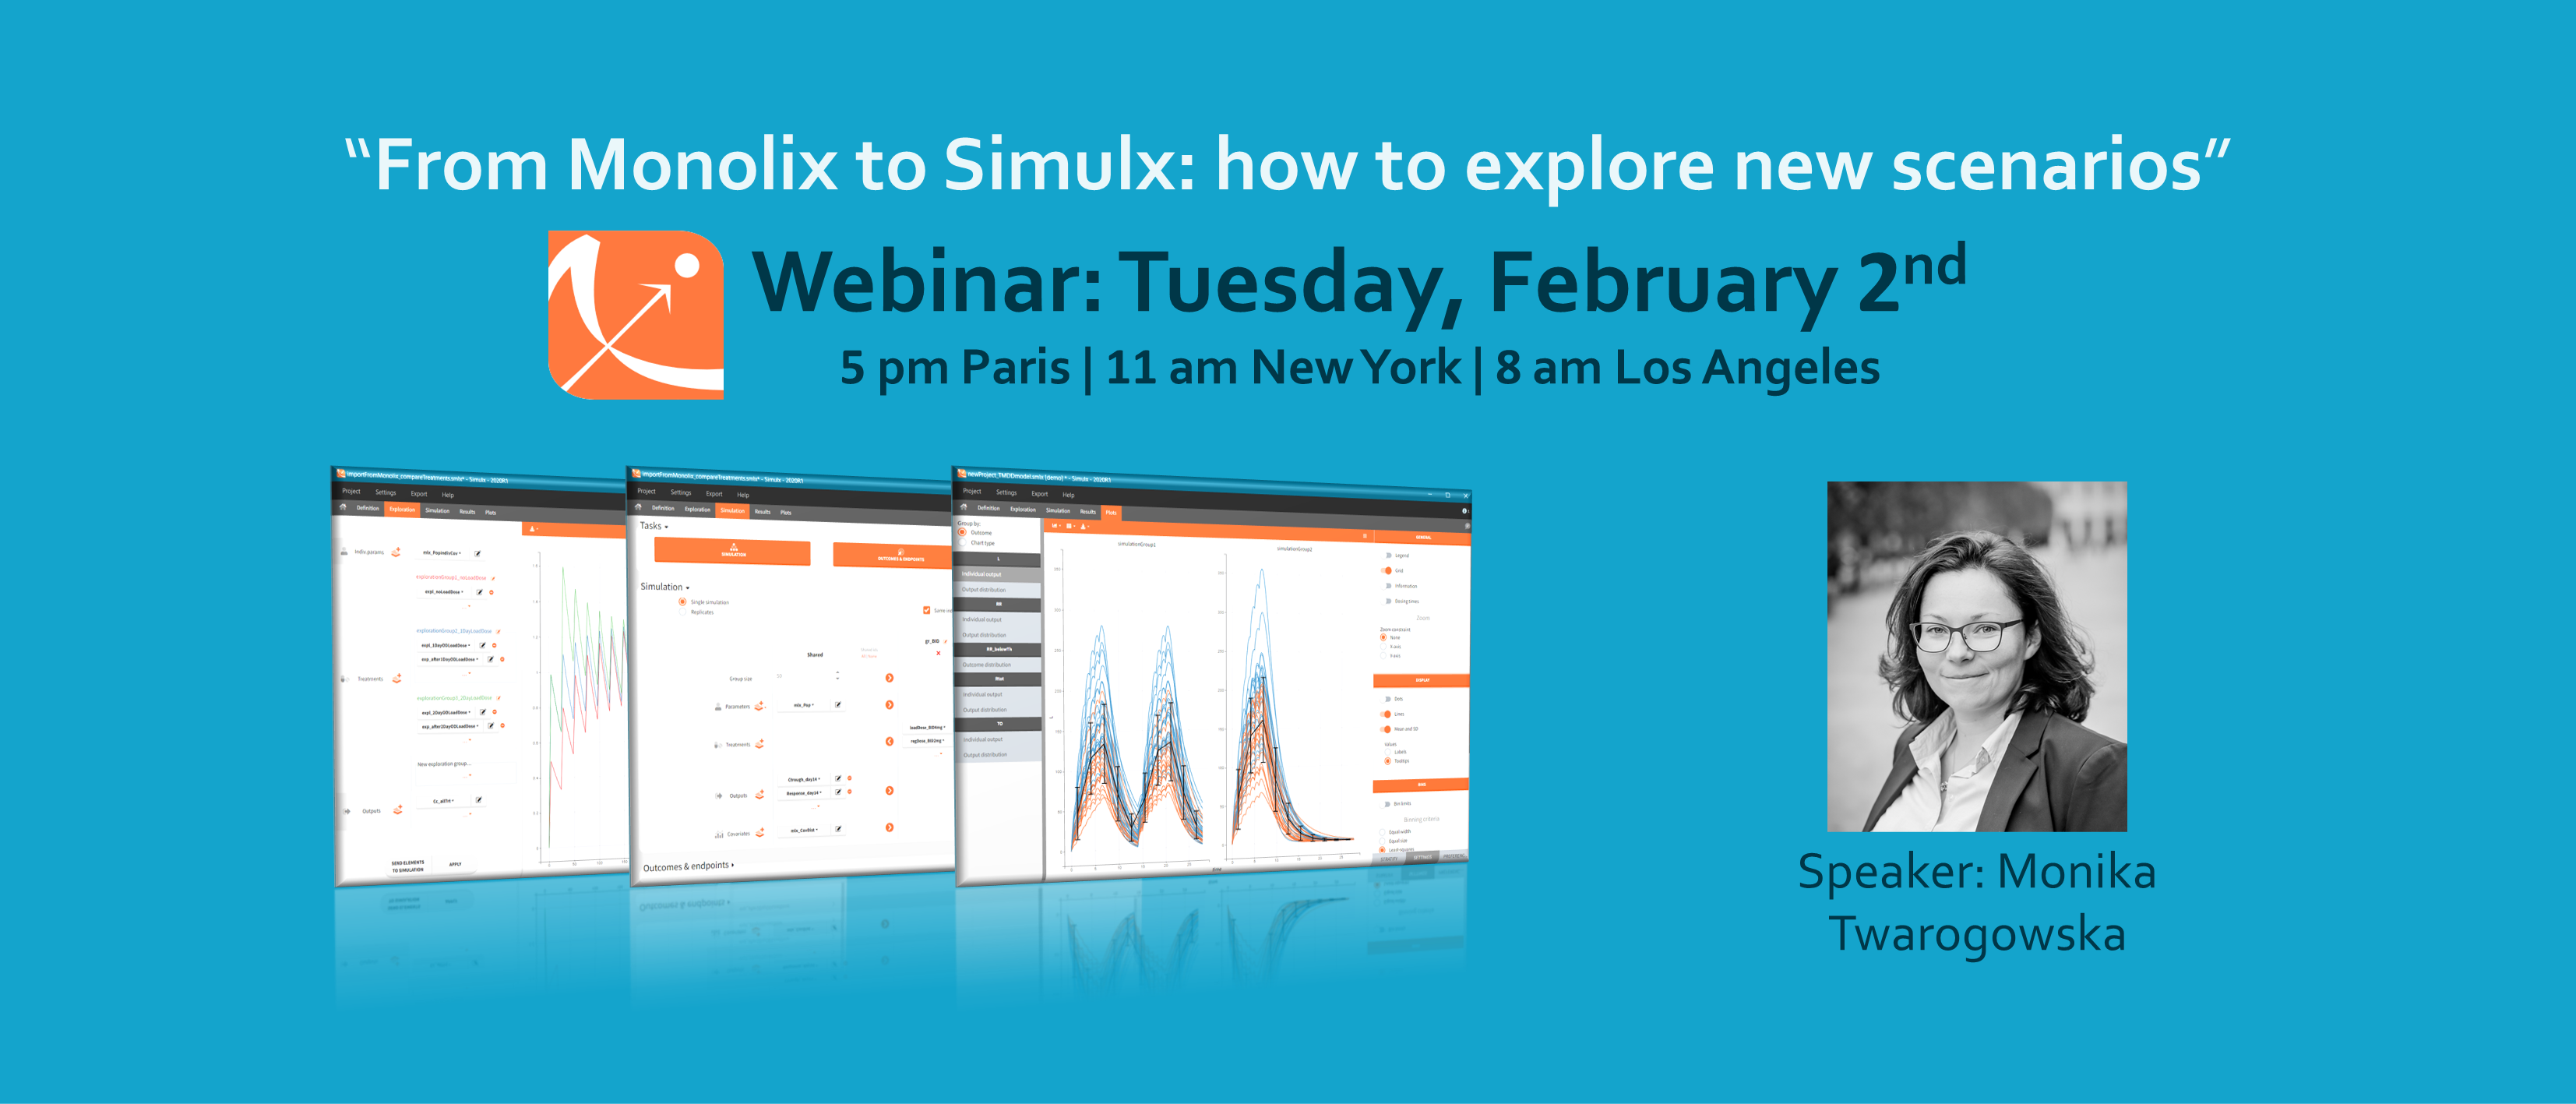 From Monolix to Simulx: how to explore new scenarios